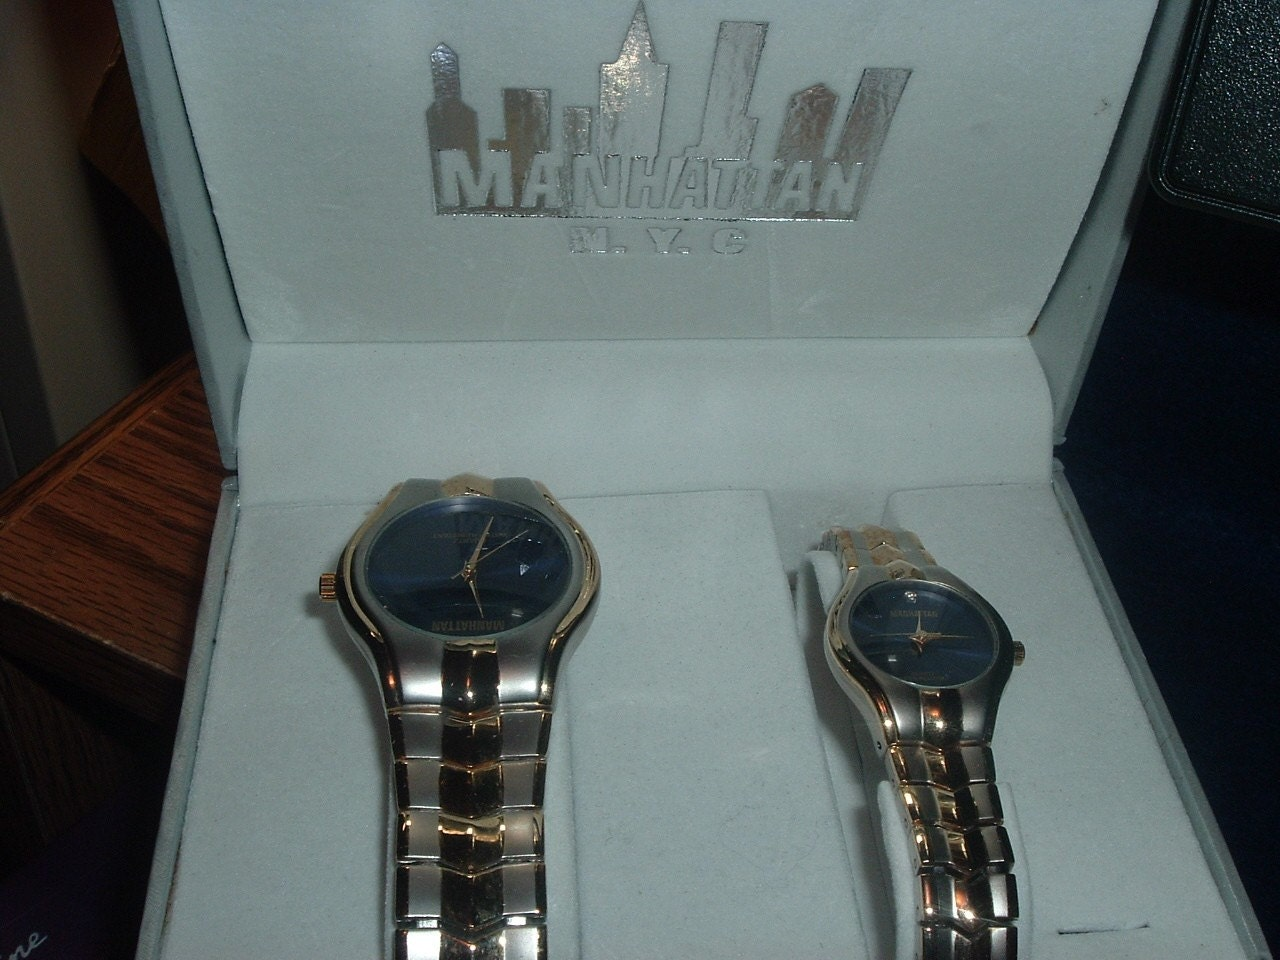 HIS AND HERS MANHATTAN QUARTZ WRISTWATCHES NEW SHARP DIAL